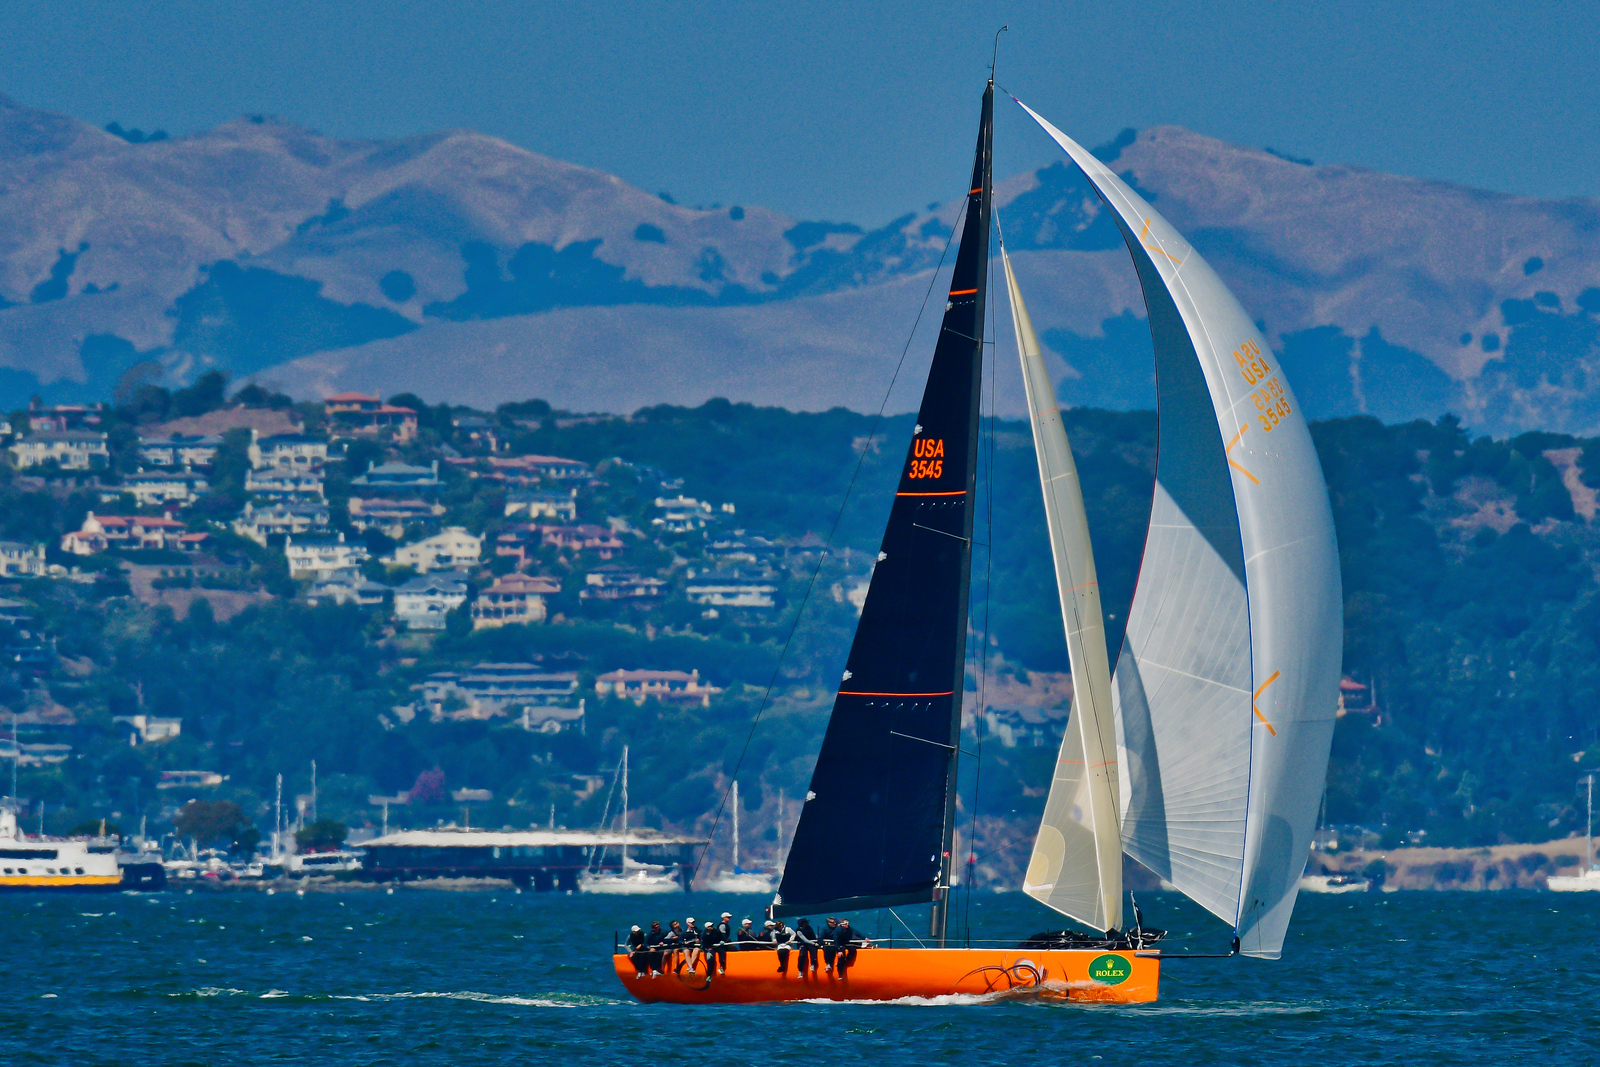 9/15/172:38:15 AM---On the water action photos of the 2017 Rolex Big Boat Series Regatta, at the St. Francis Yacht Club, San Francisco, CA | Tom Walker